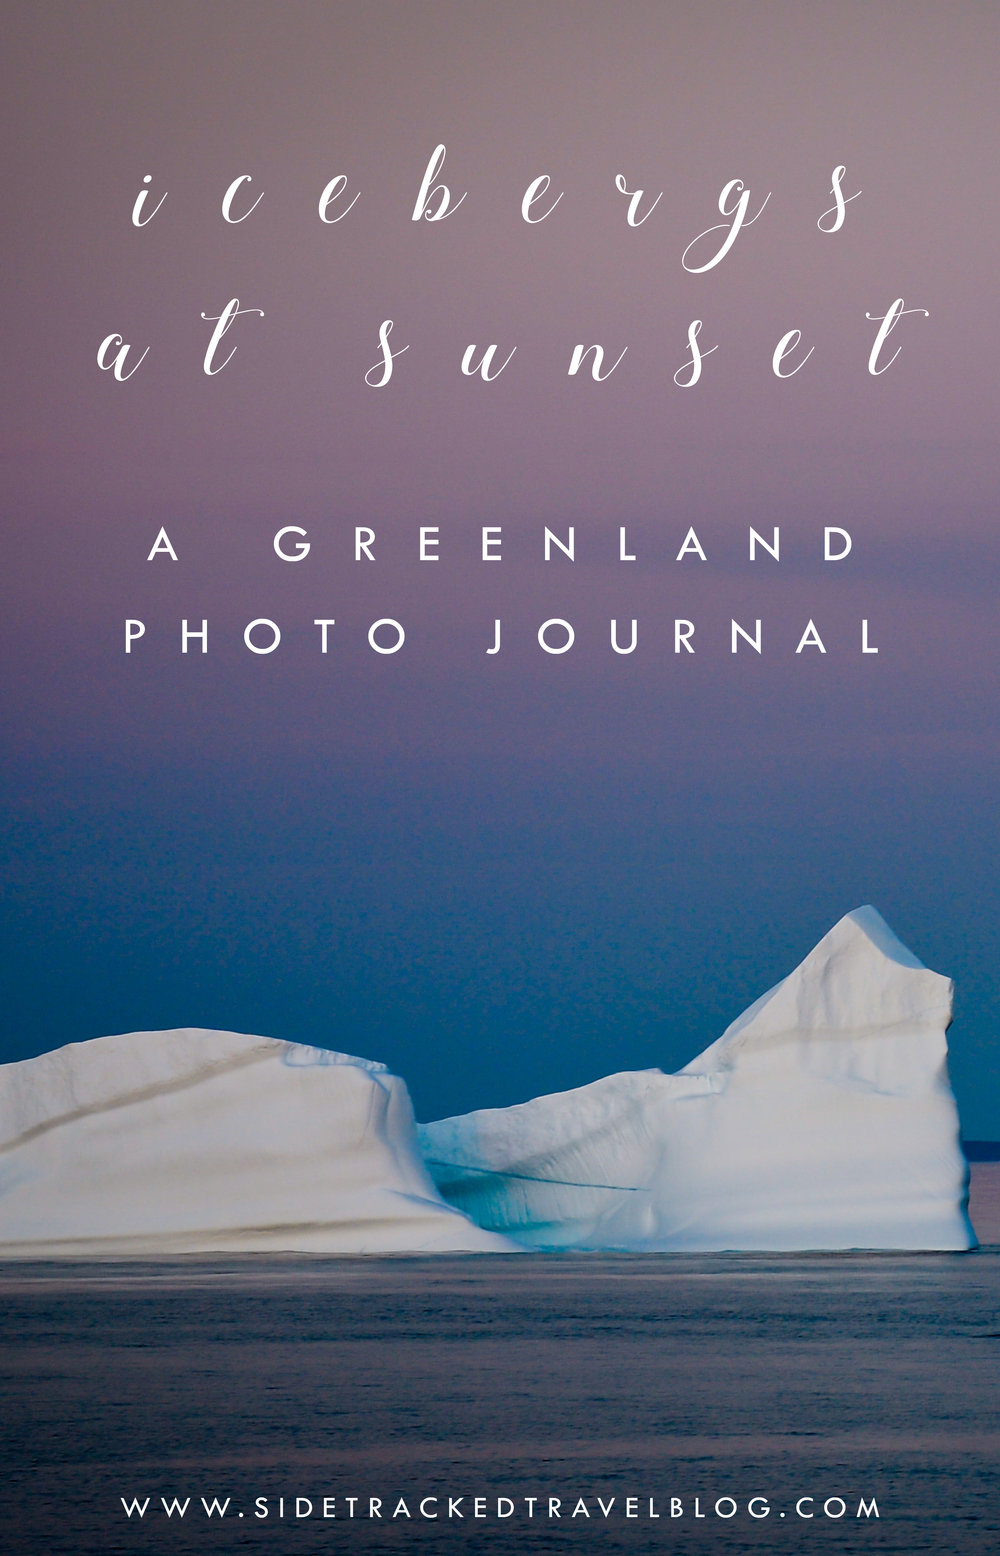 Each minute spent in Greenland felt magical, and I have yet to find another place that has intrigued me more, but watching the sun set over this remote landscape, and the vivid display of light that went along with it, was a clear highlight.